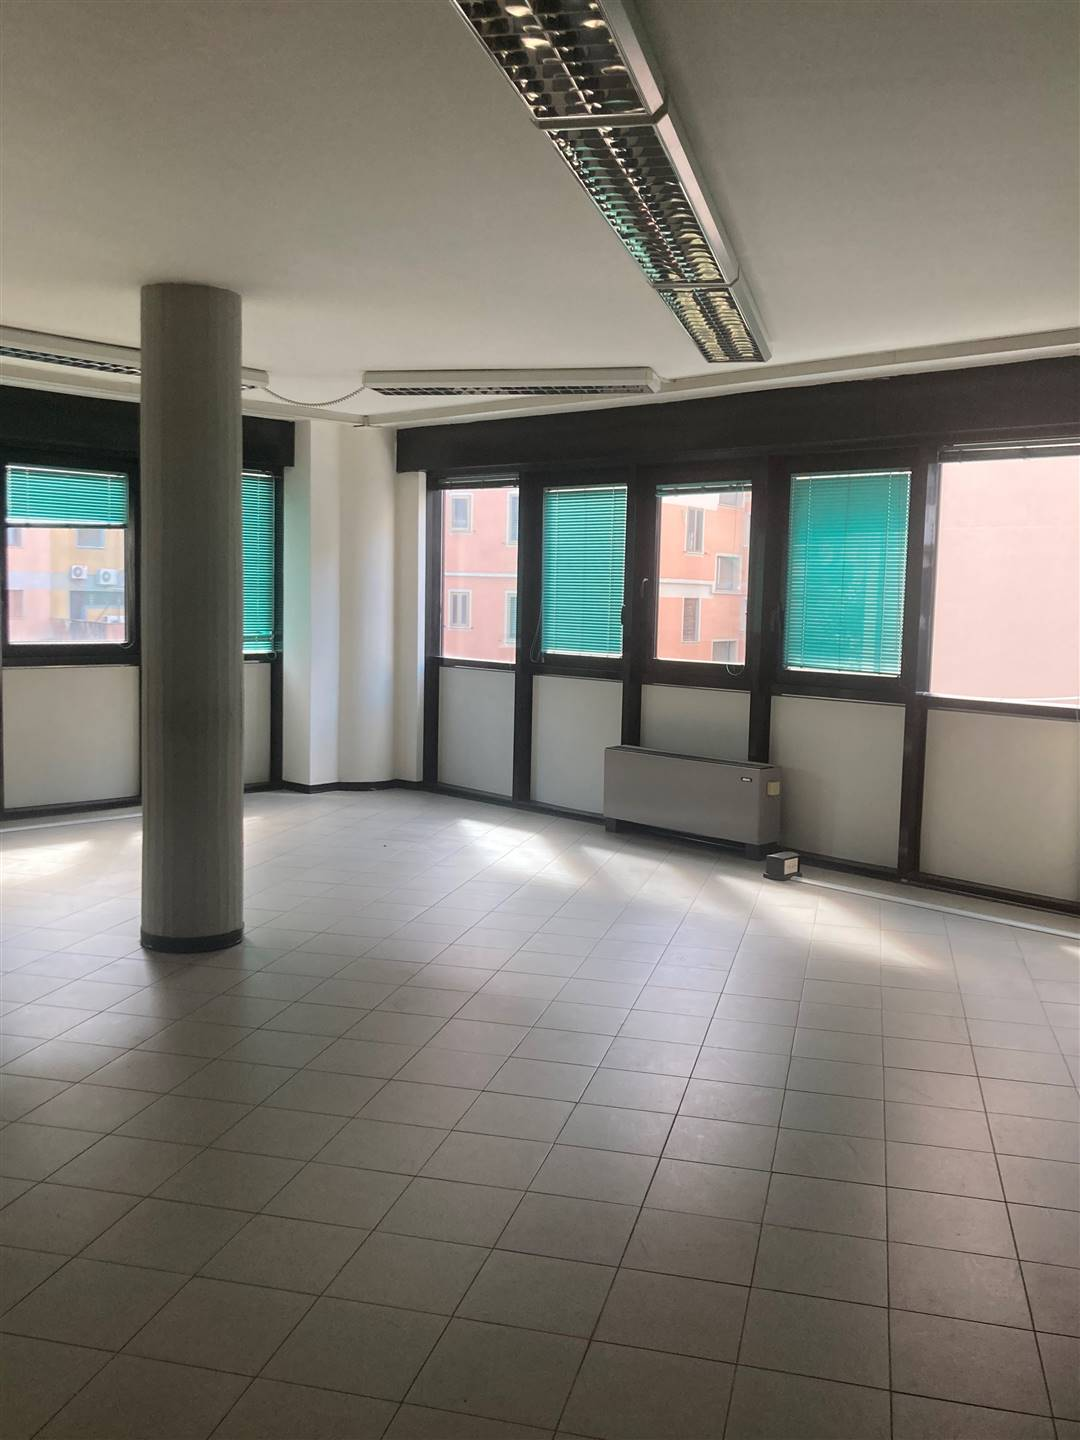 MONTEGRAPPA, PRATO, Office for rent, Energetic class: G, composed by: , 4 Bathrooms, Elevator, Price: € 5,000